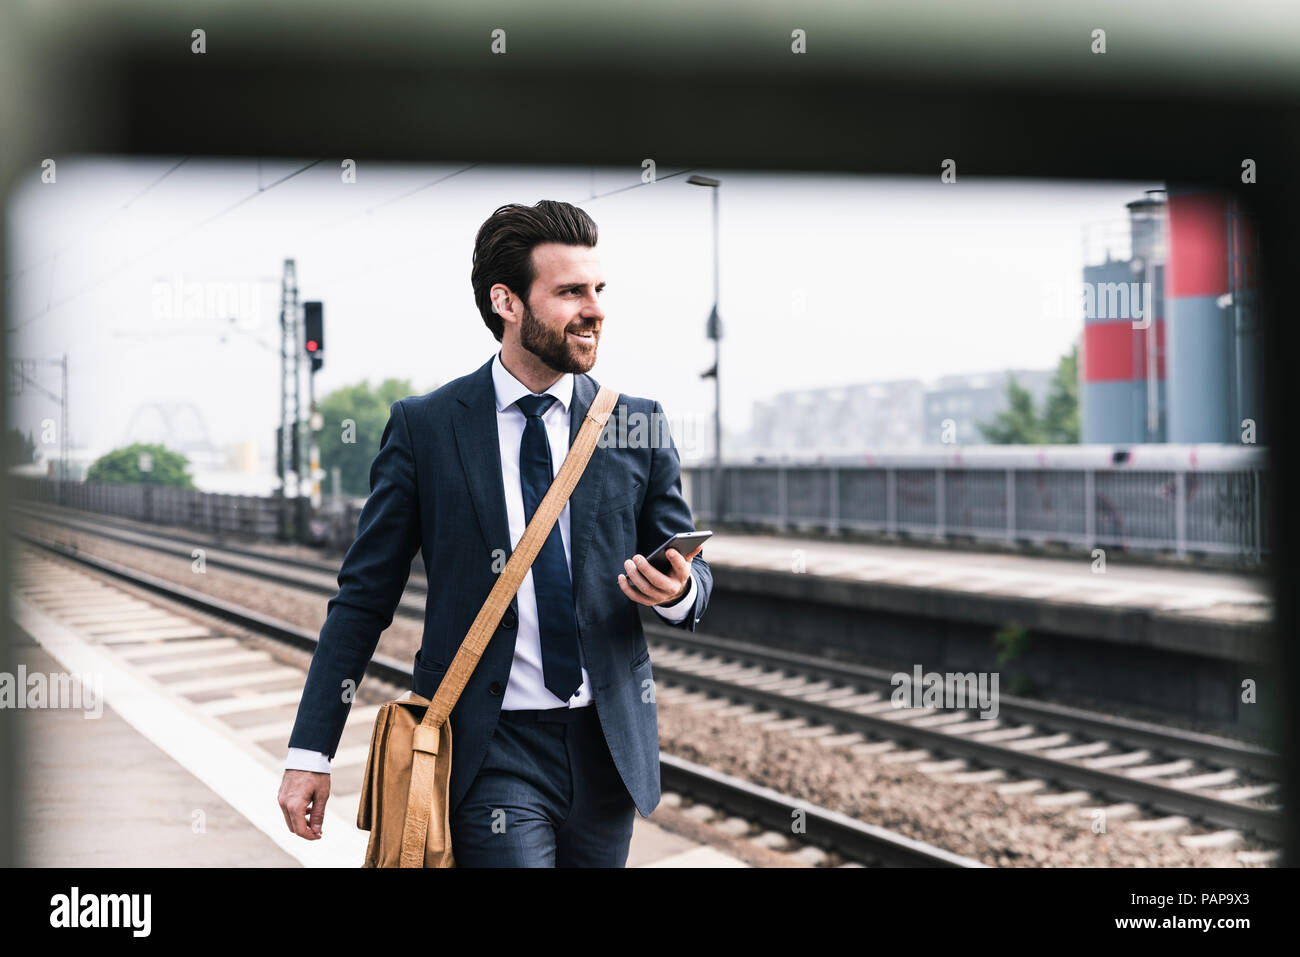 Smiling businessman with cell phone walking at the platform - Stock Image